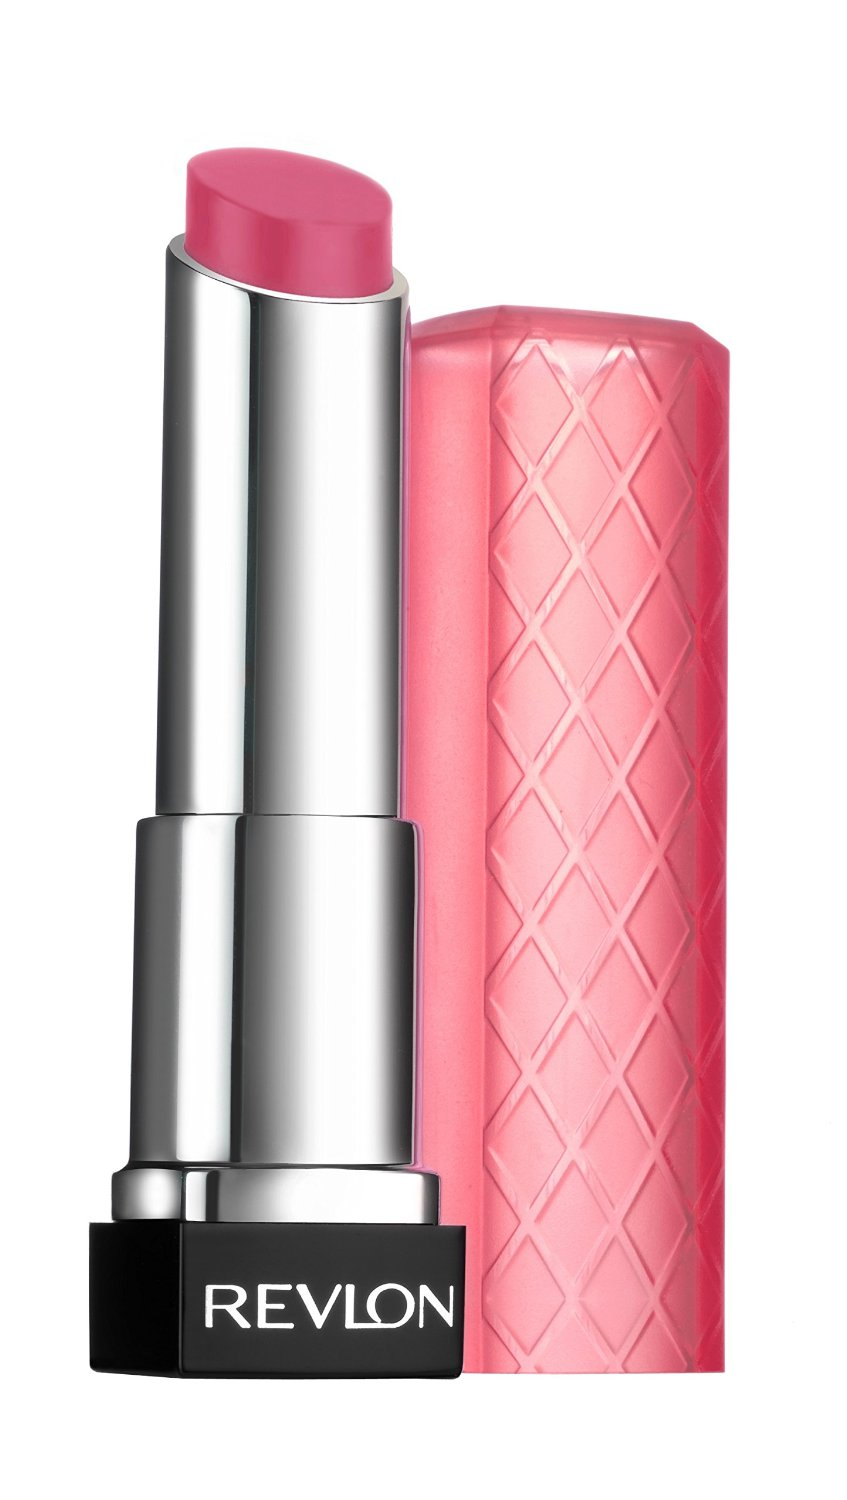 Revlon-Colorburst-Lip-Butter-Lipstick-2-55g-Choose-Your-Shade